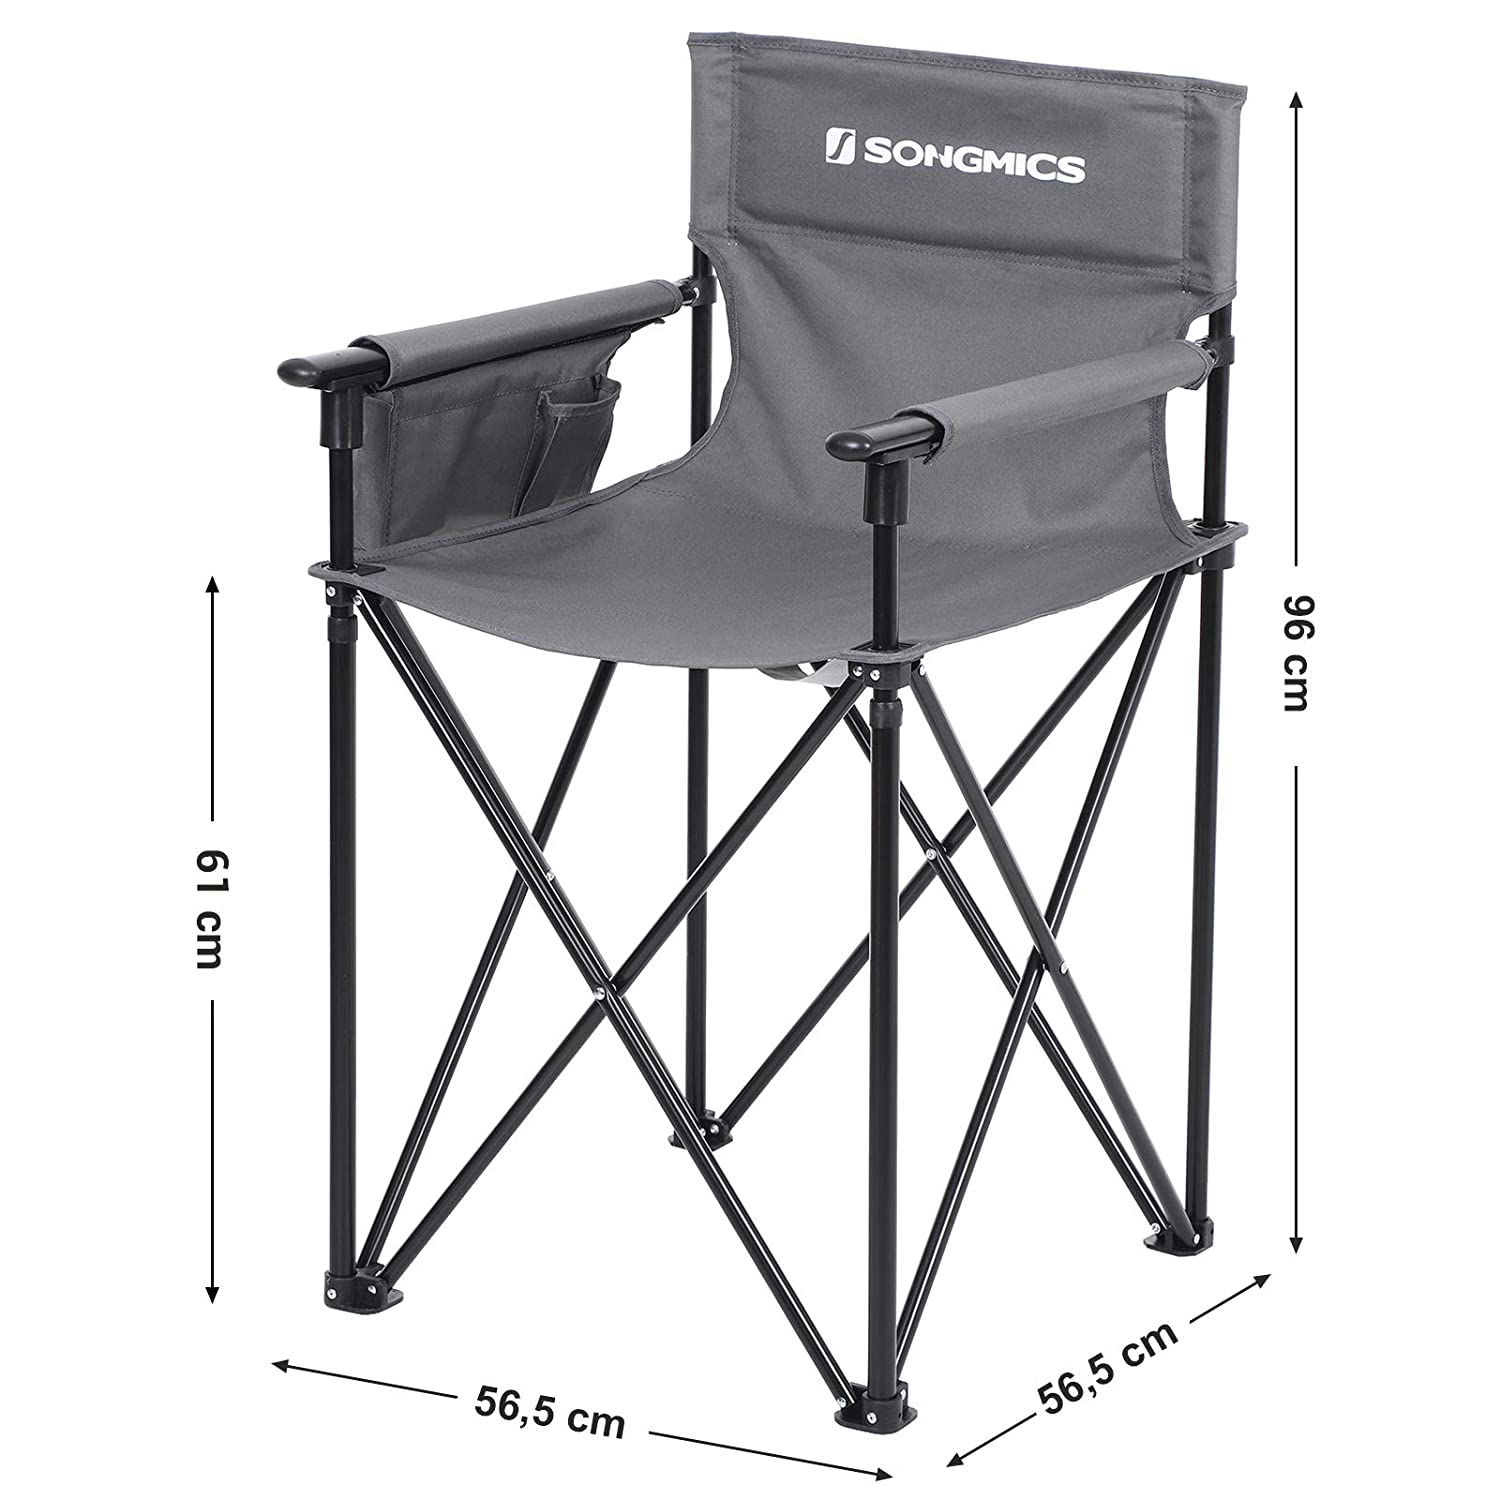 SONGMICS Silla de Camping, Silla de Director Plegable